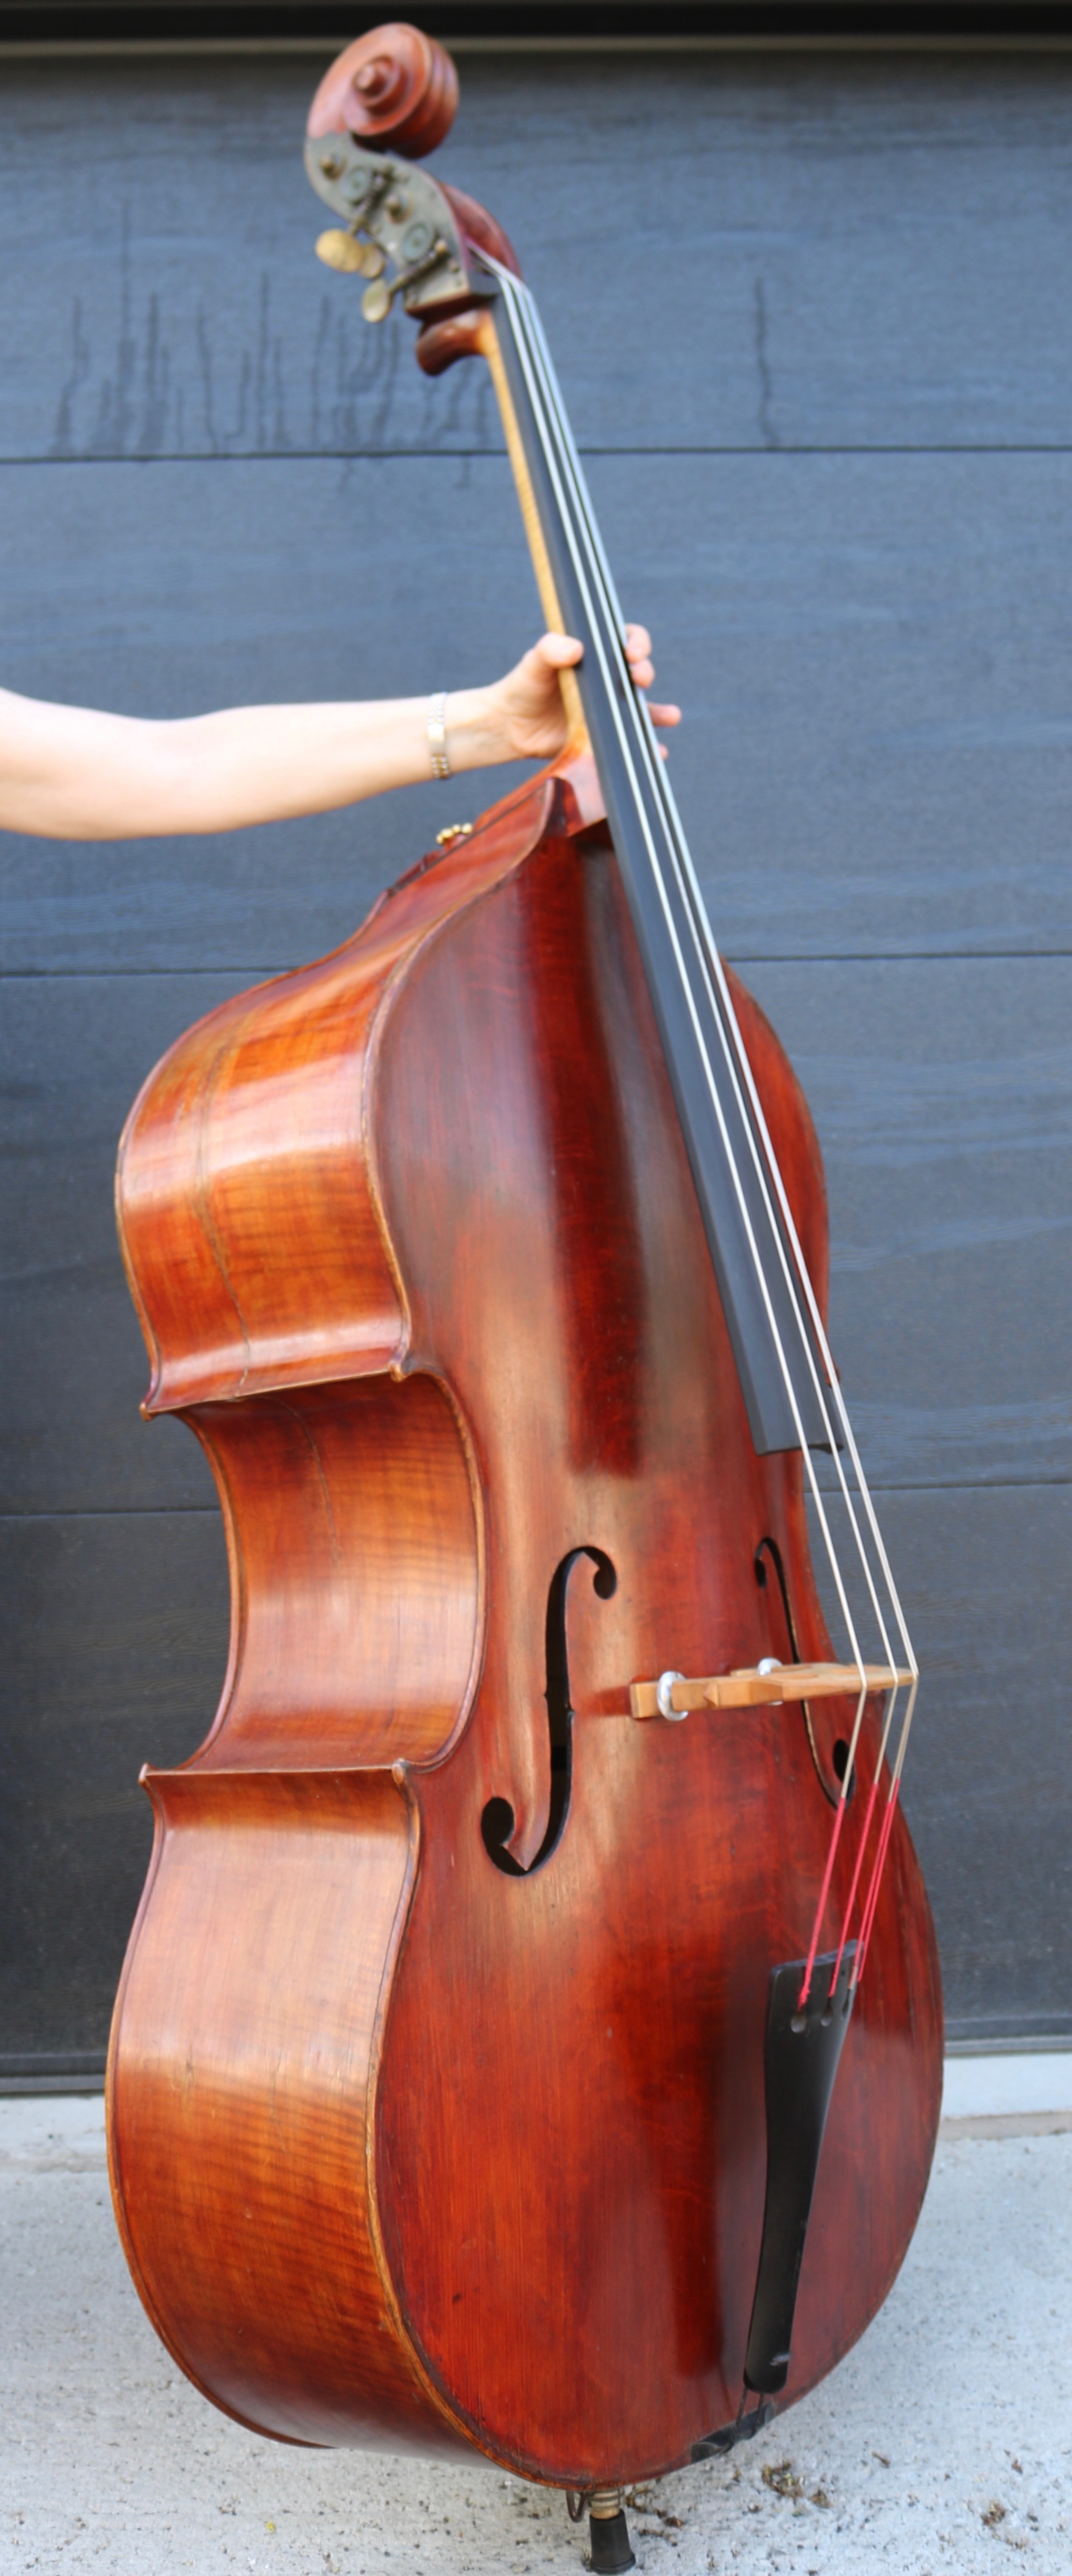 International Society of Bassists - Basses for Sale